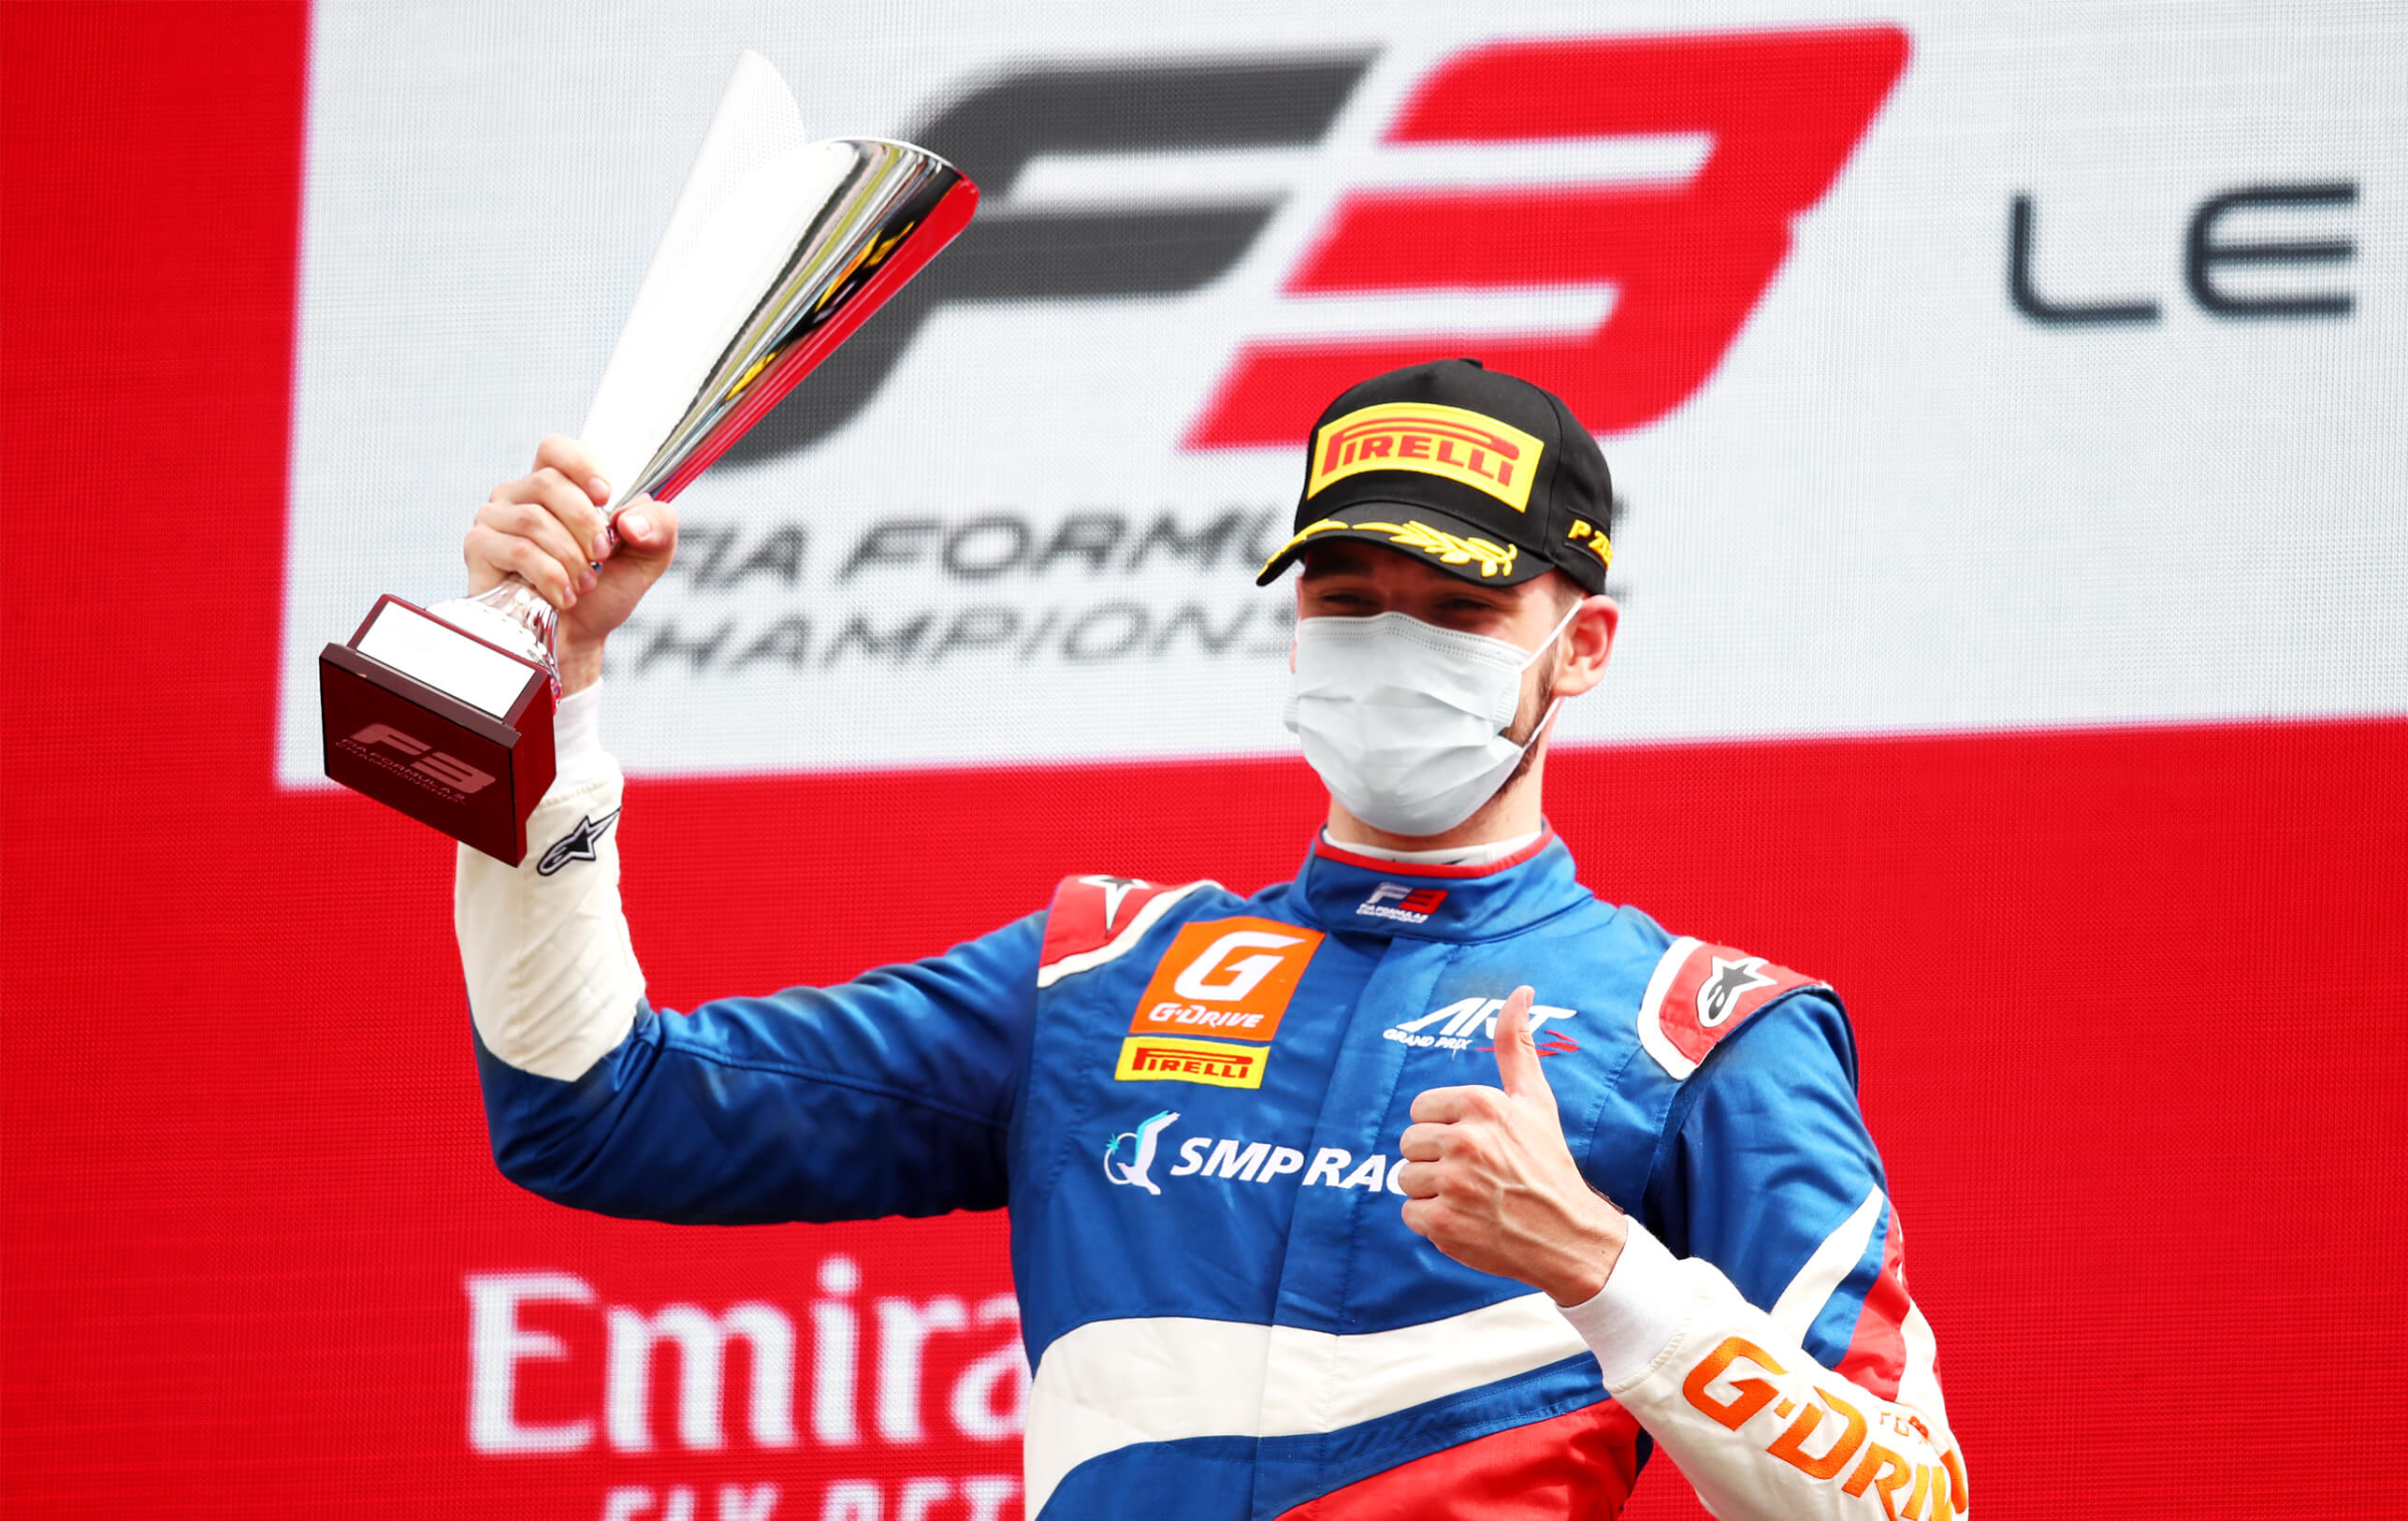 Win, pole position and point finishes in the FrenchGP